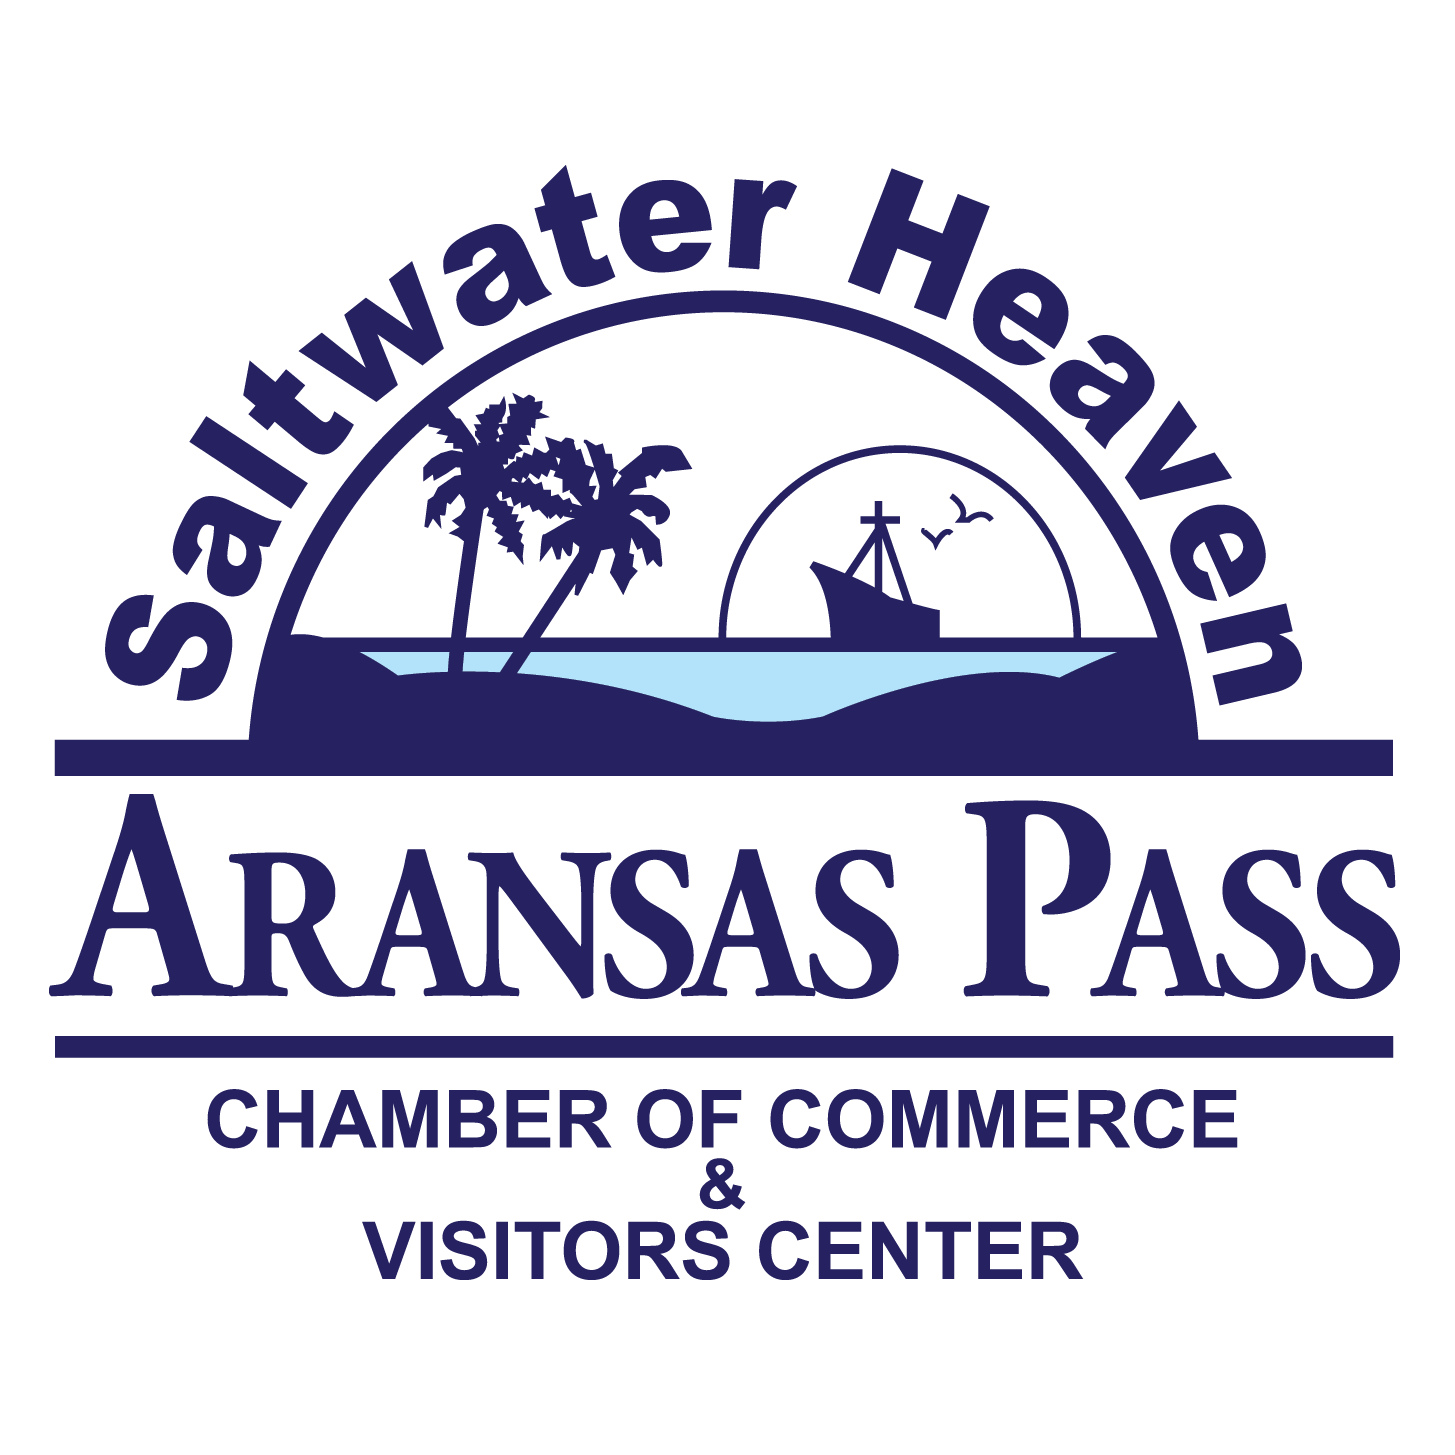 Business Management Consultant in TX Aransas Pass 78336 Aransas Pass Chamber of Commerce & Visitor Center 130 W. Goodnight Ave  (361)758-2750